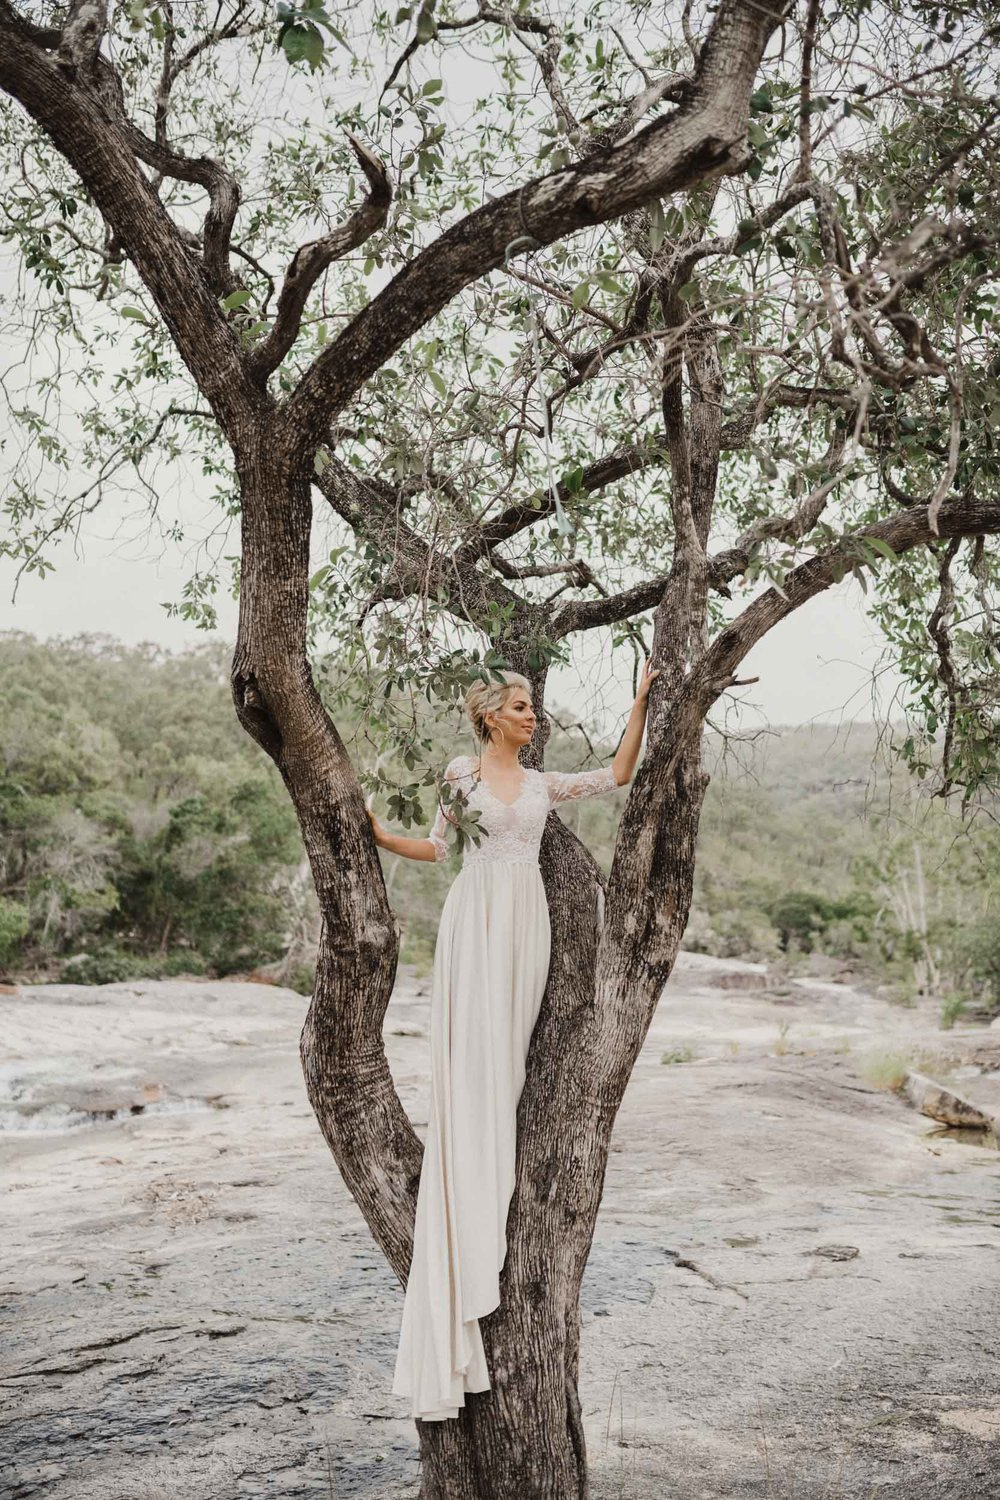 The Raw Photographer - Cairns Wedding Photographer - Brides Styled Shoot - Dress Jonovia Bridal - Hair Makeup Ideas-24.jpg